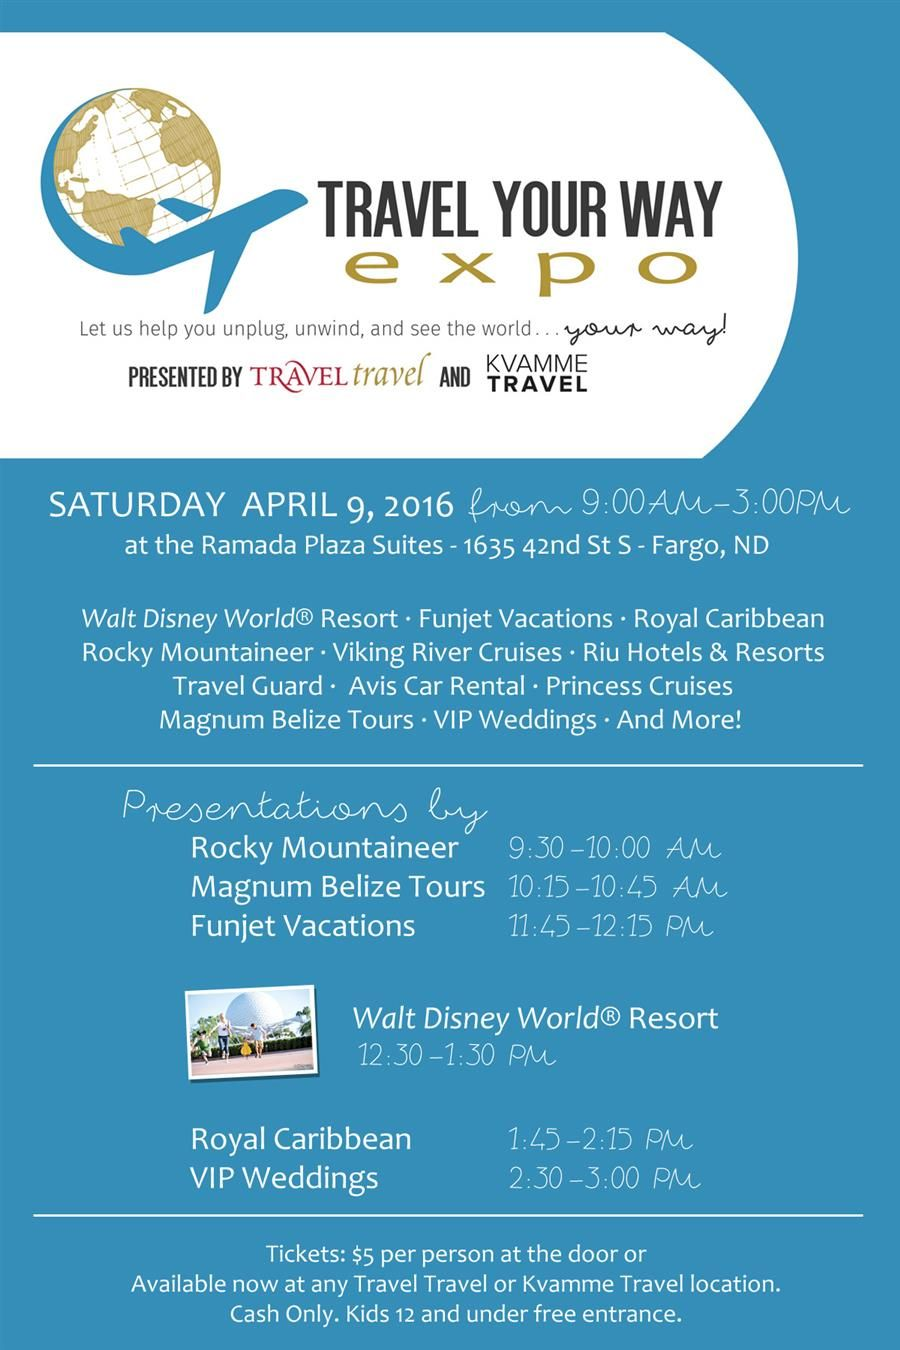 Join Travel Travel April 9 At The Ramada Fargo For The Travel You